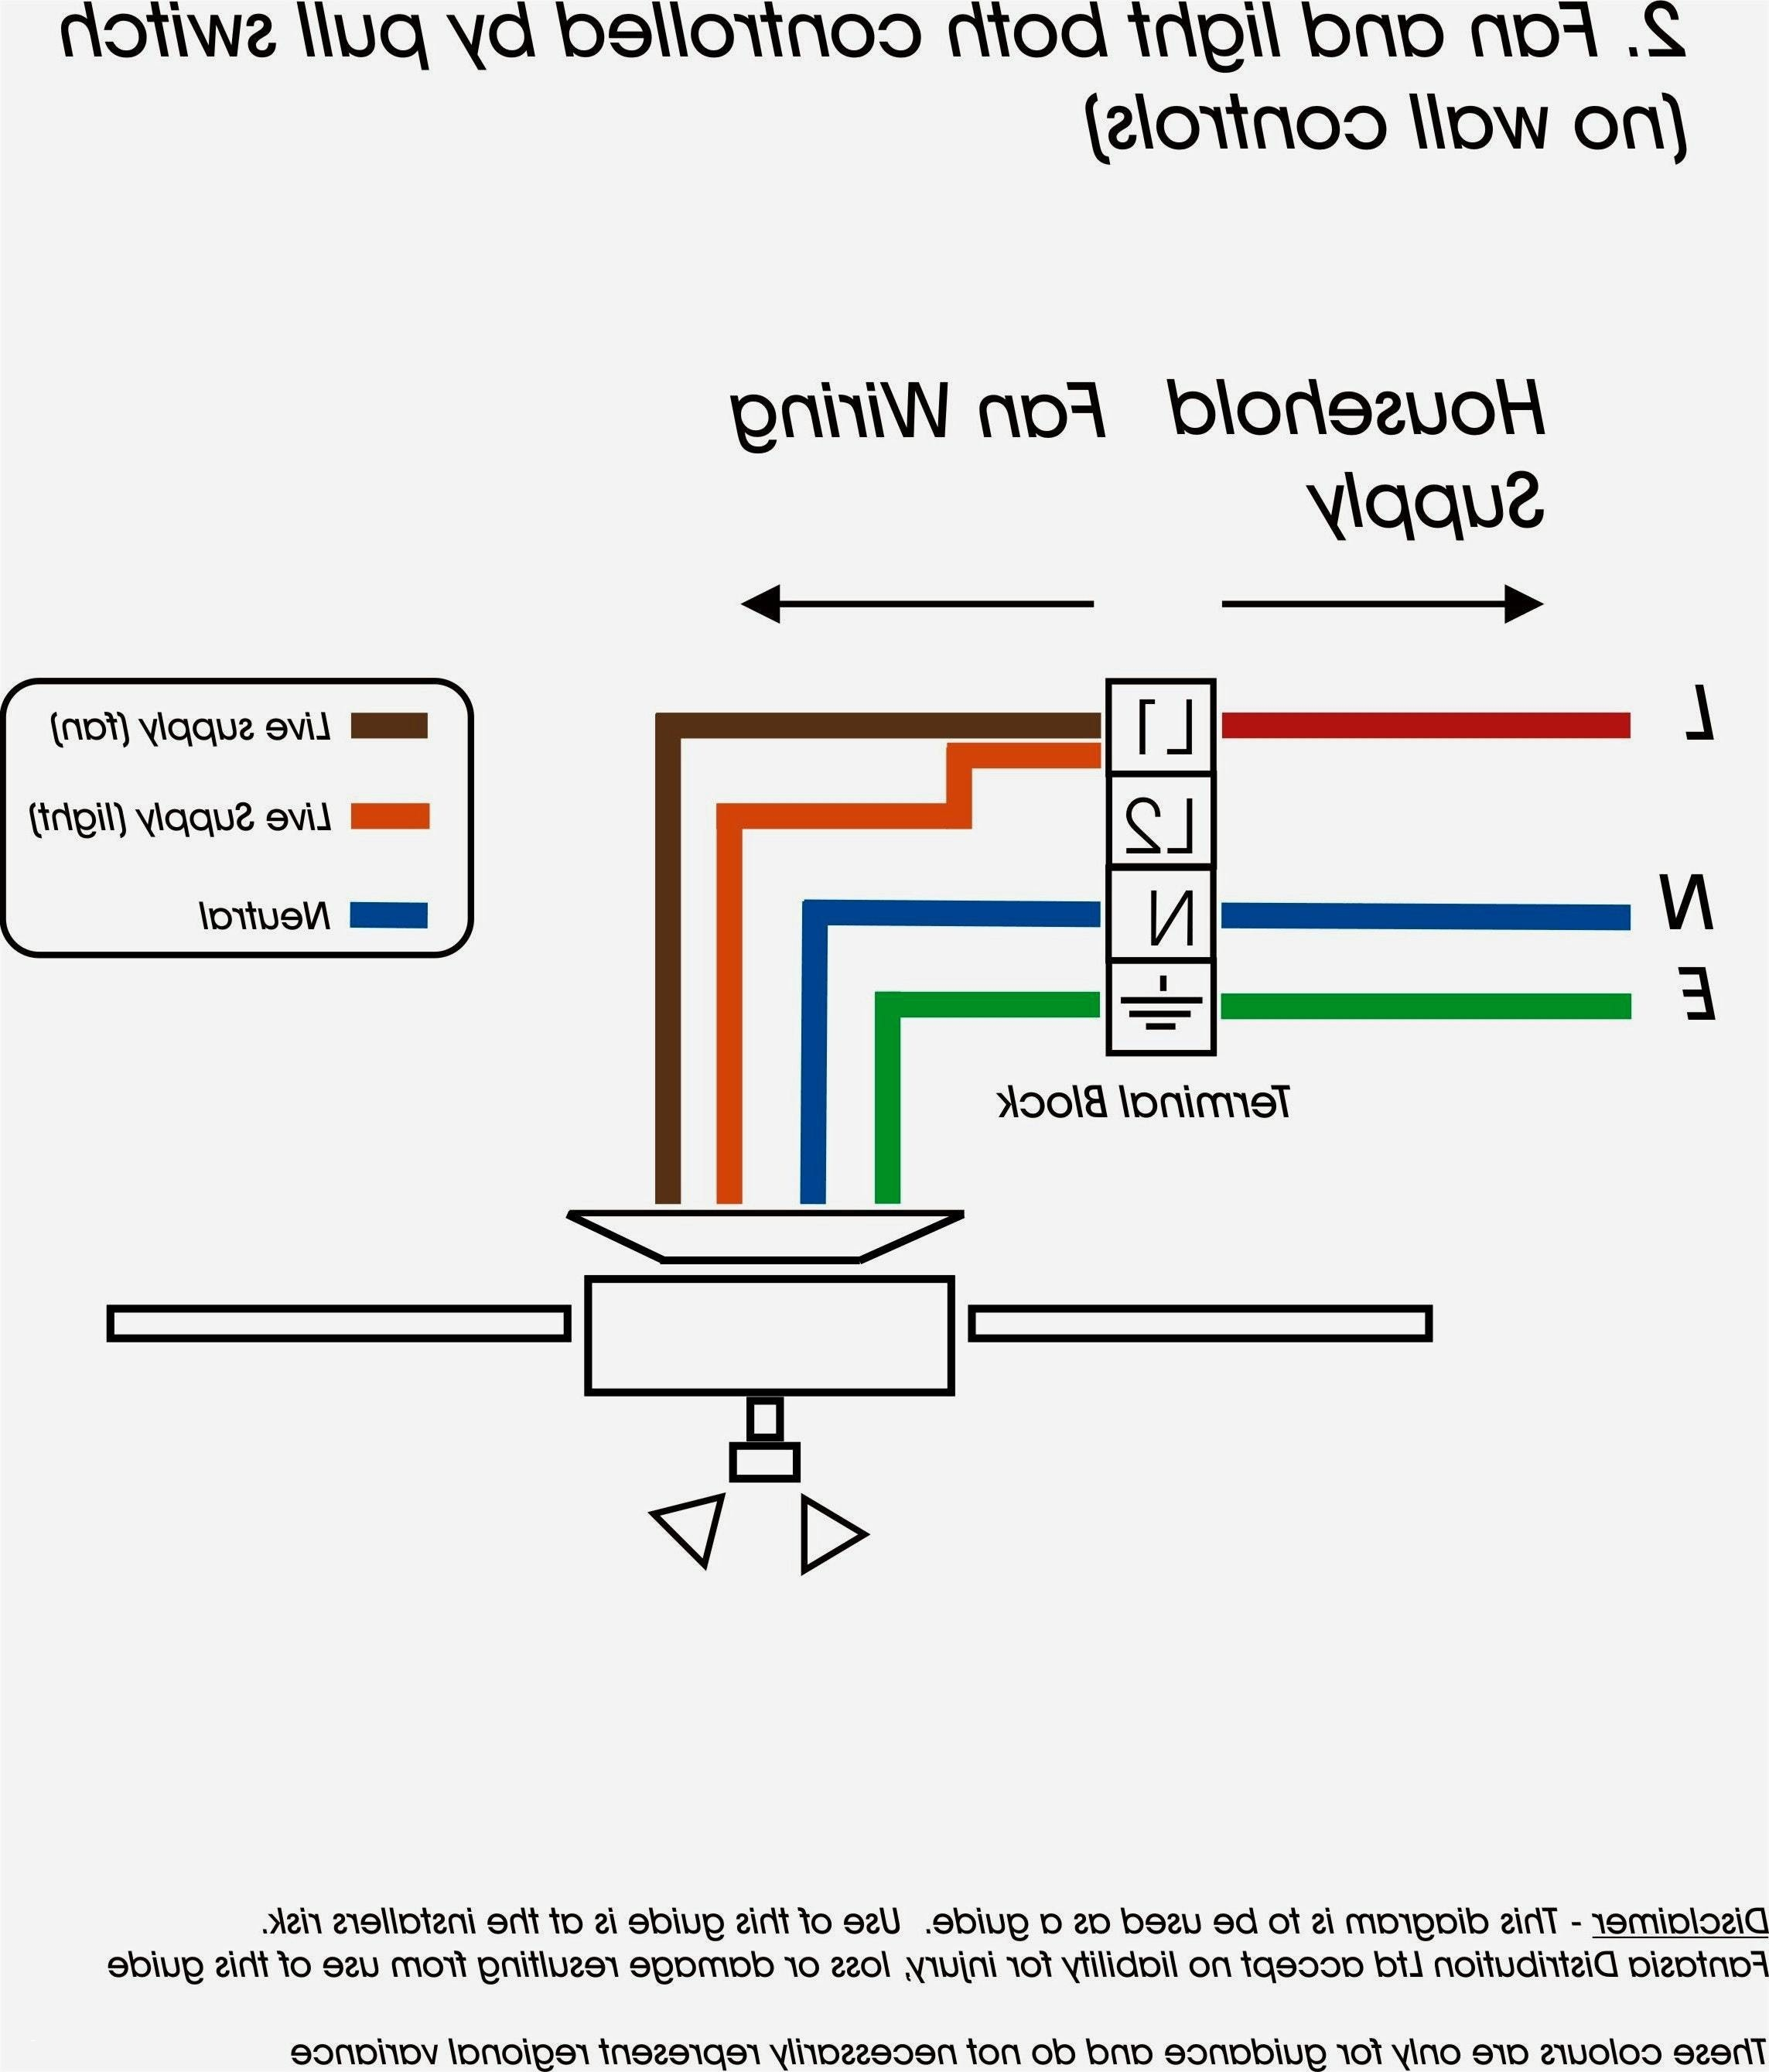 hunter fan wiring diagram Download-hunter fan wiring diagram Download Ceiling Fan Wire Diagram Inspirational Wiring Diagram Examples Archives L2archive DOWNLOAD Wiring Diagram 1-p